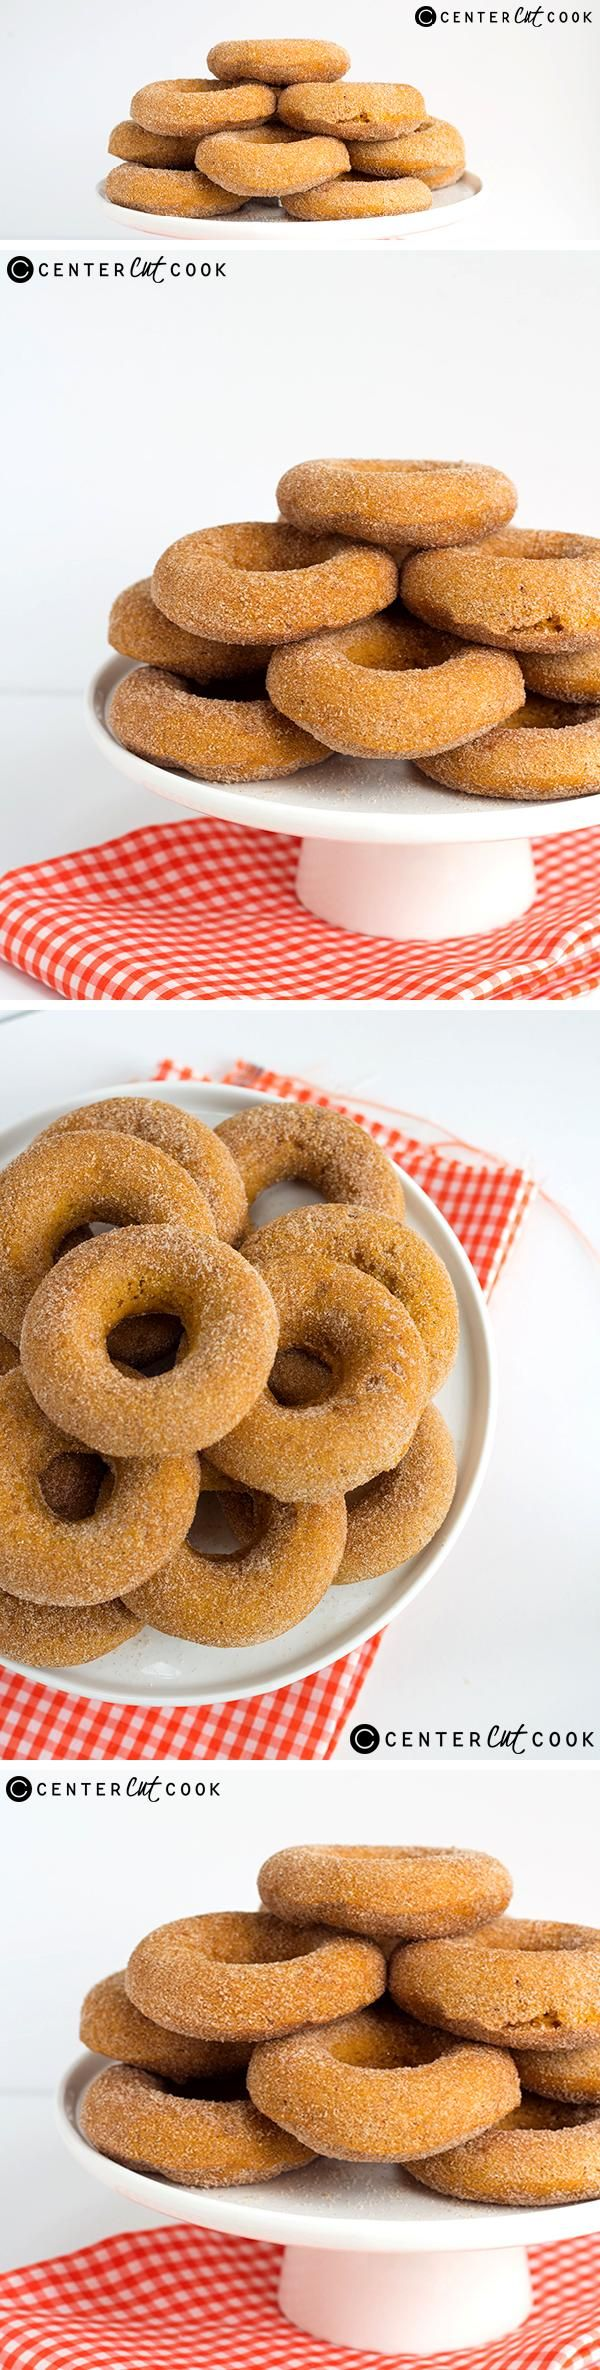 These soft, freshly BAKED PUMPKIN DONUTS with a generous coating of cinnamon sugar pairs well with a warm mug of coffee. The perfect fall treat!